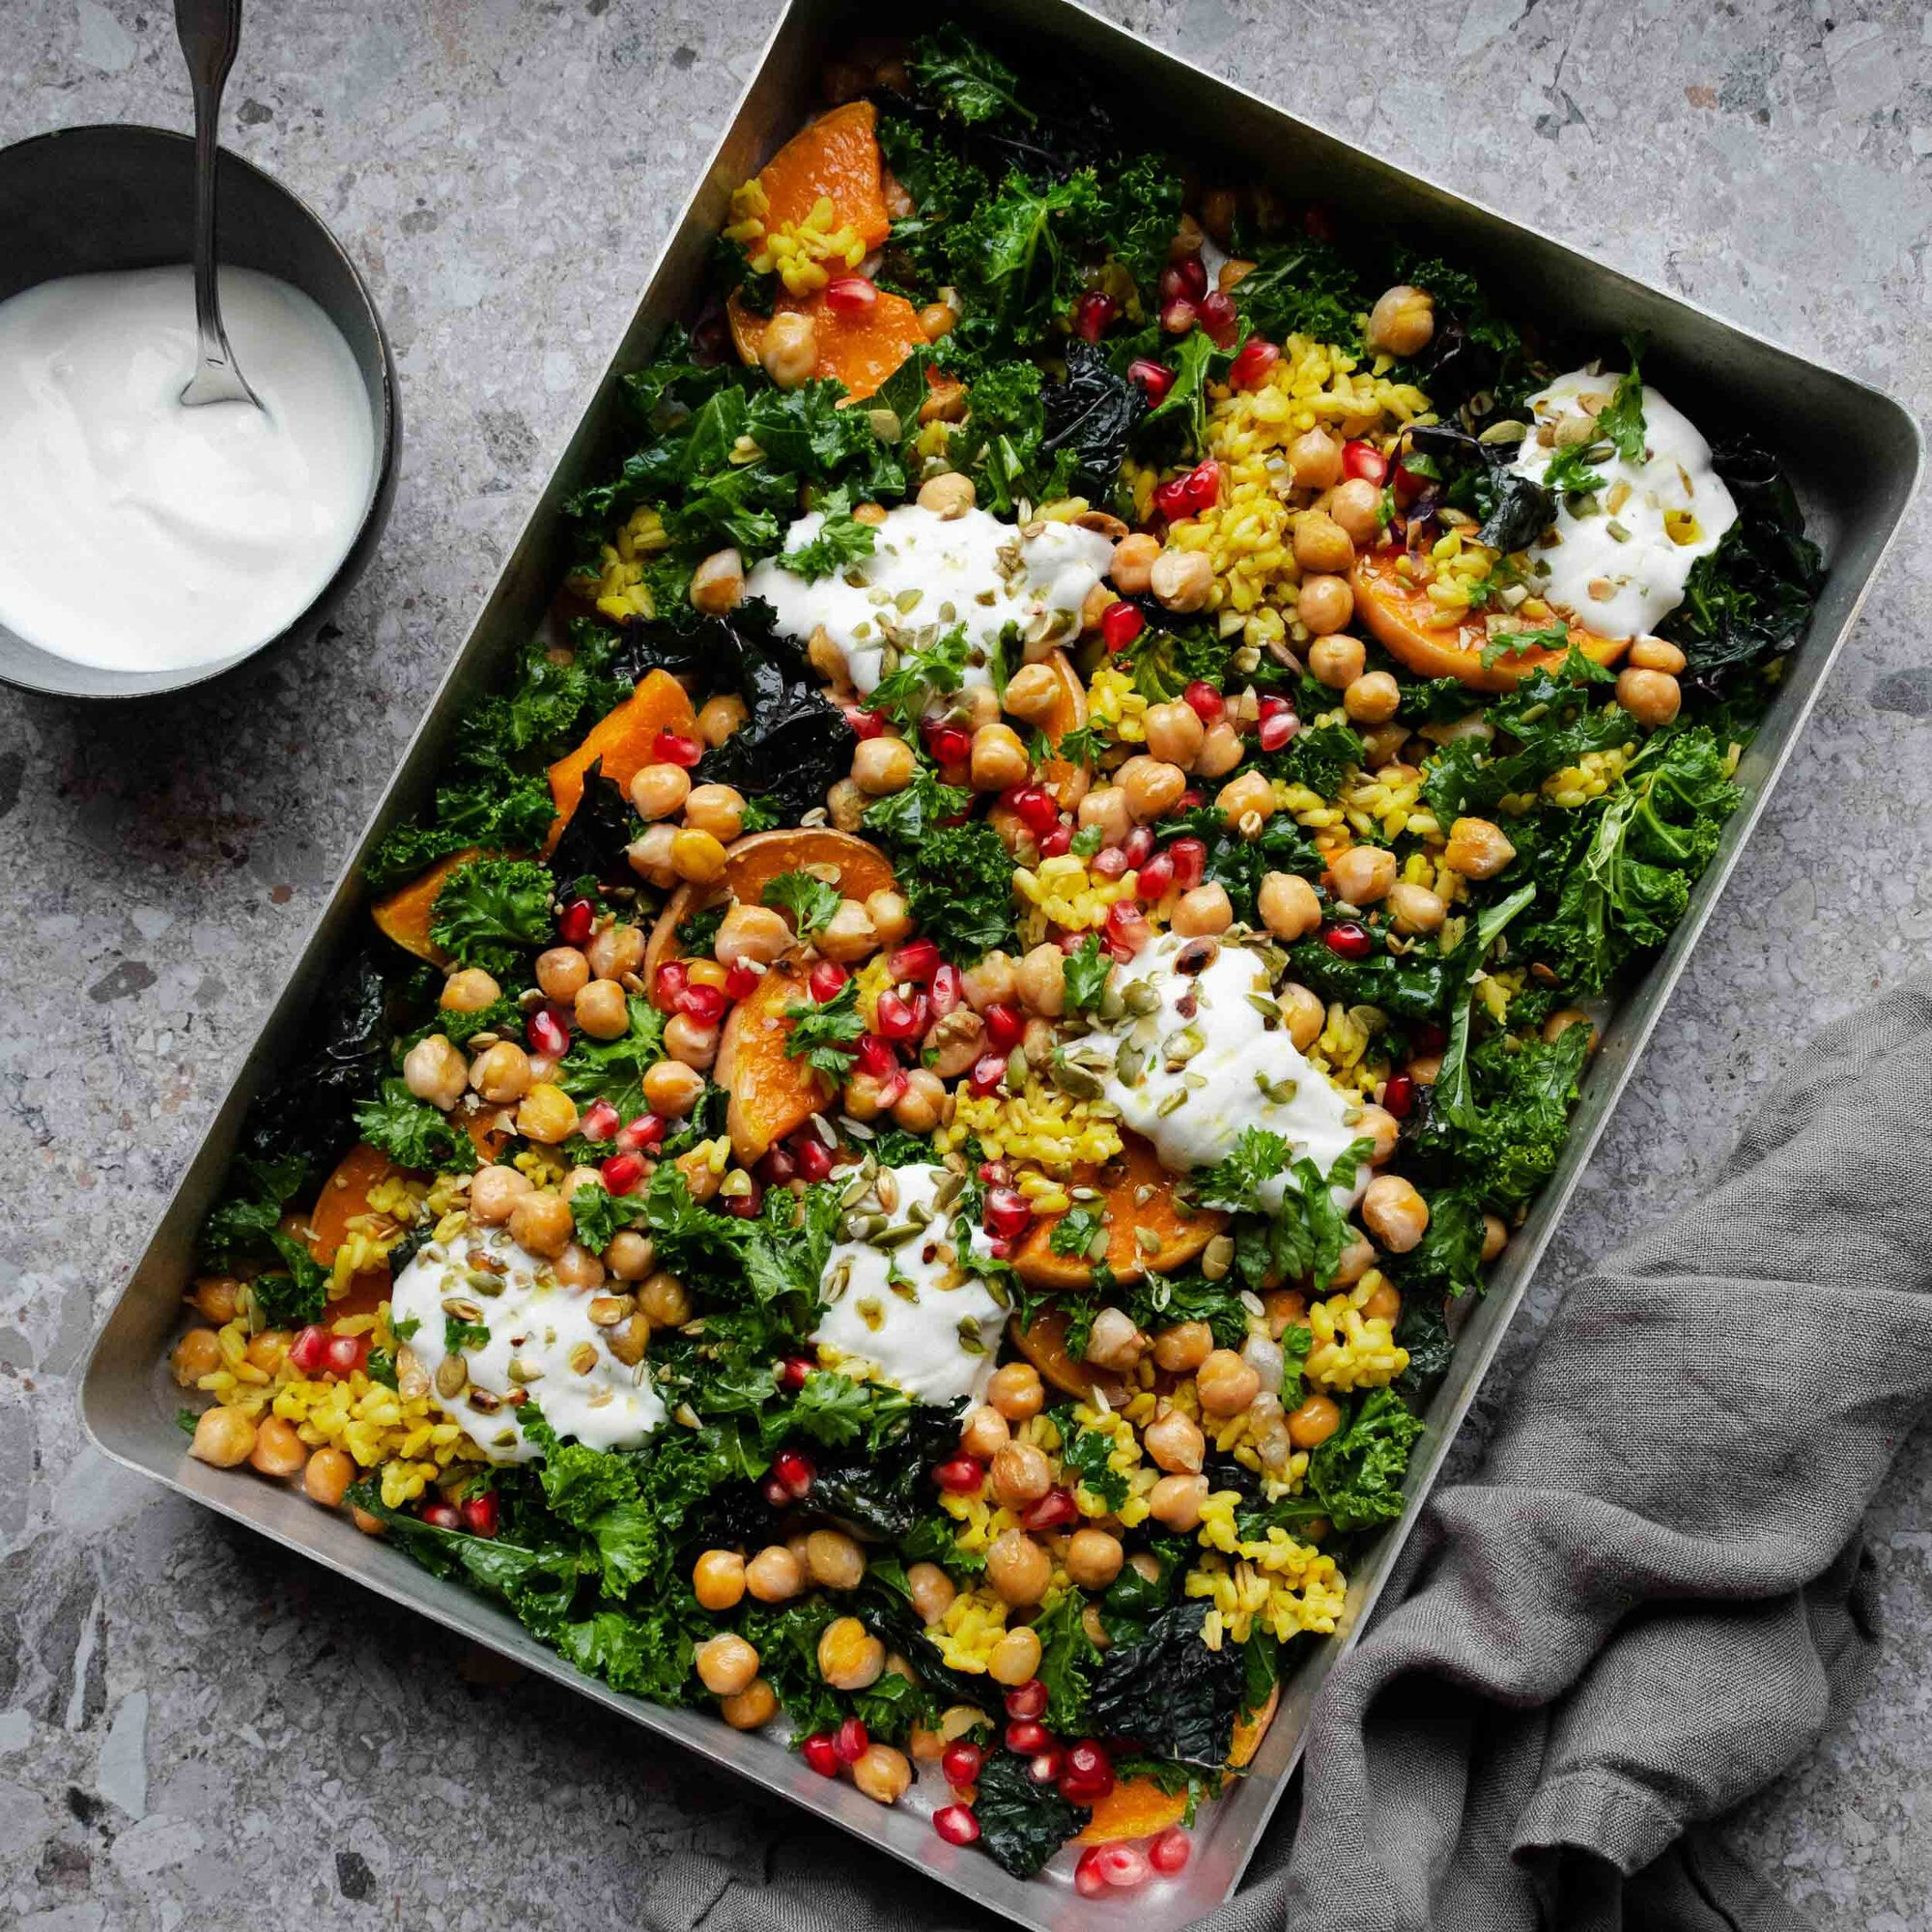 Warm Winter Salad with Roasted Squash, Kale and Chickpeas